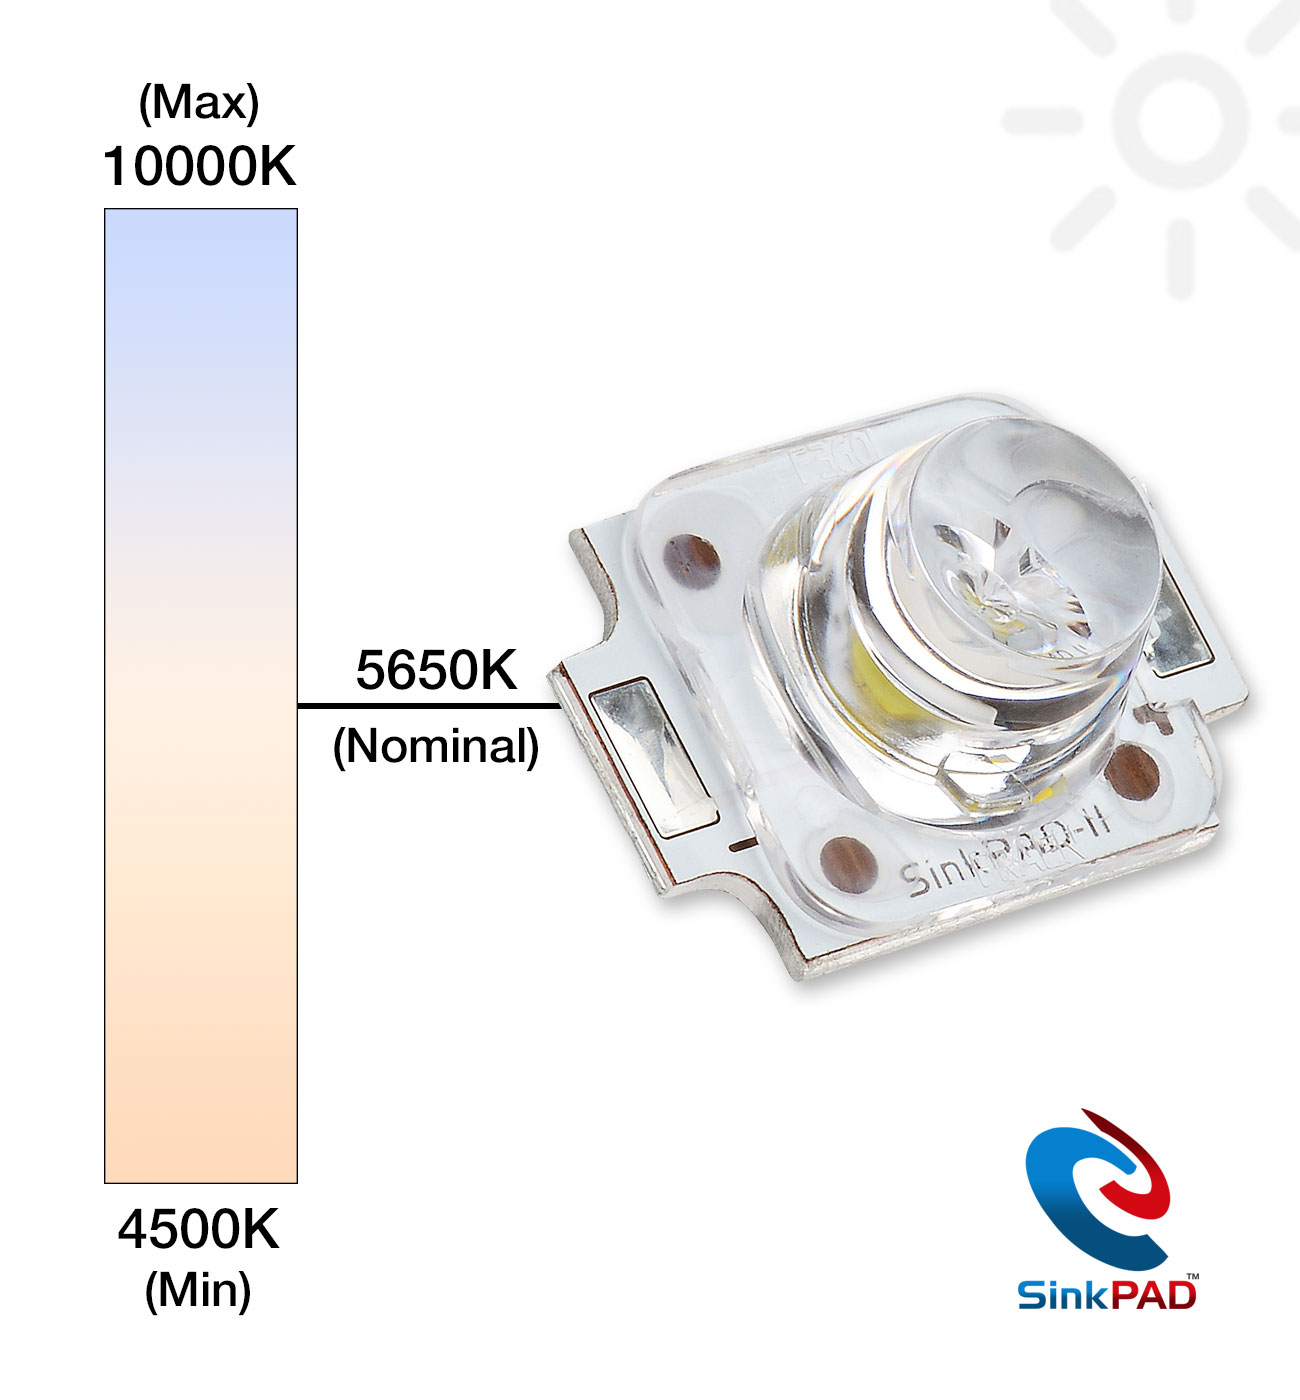 Cool White 5650k Sinkpad Ii Led Module With Side Emitting Optic Zxsc400 In The Luxeon High Powered And Datasheet Rebel On A 235 Lm 700ma